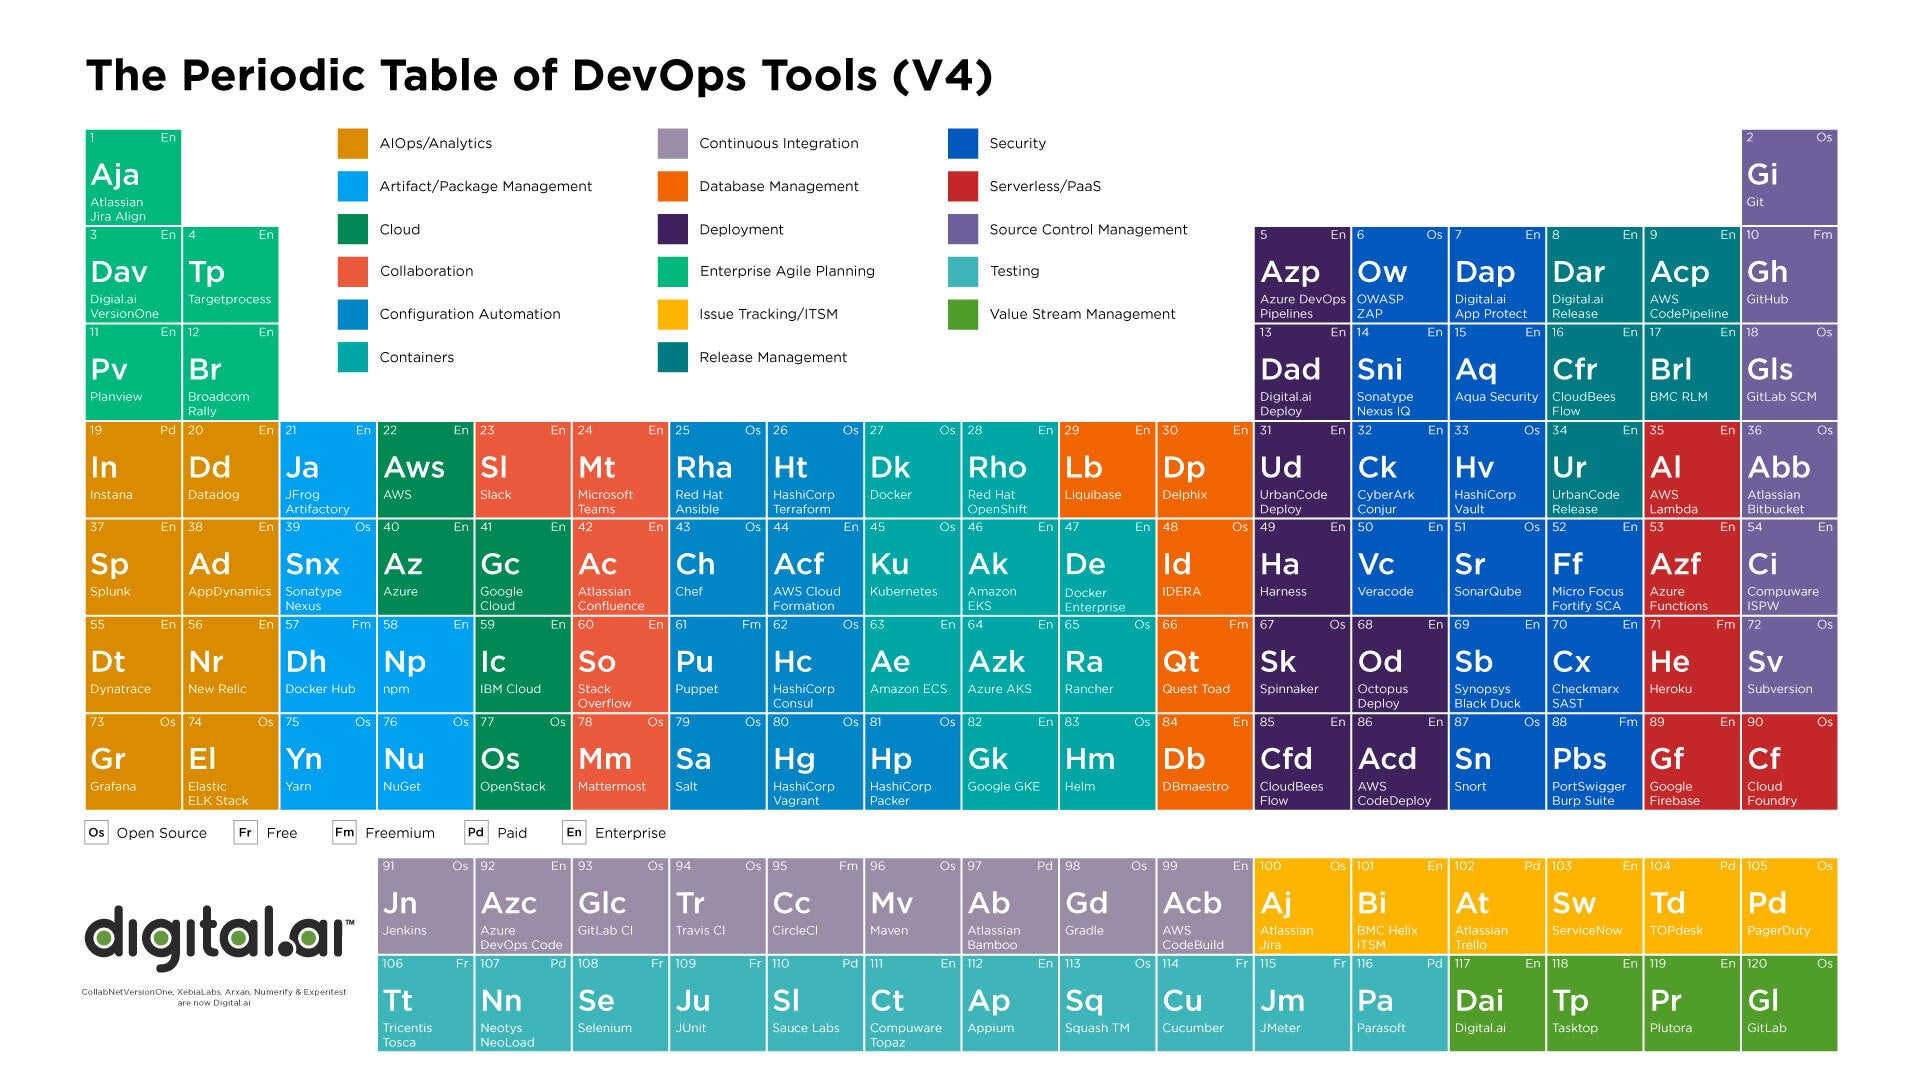 Digital.ai Periodic Table of DevOps Tools